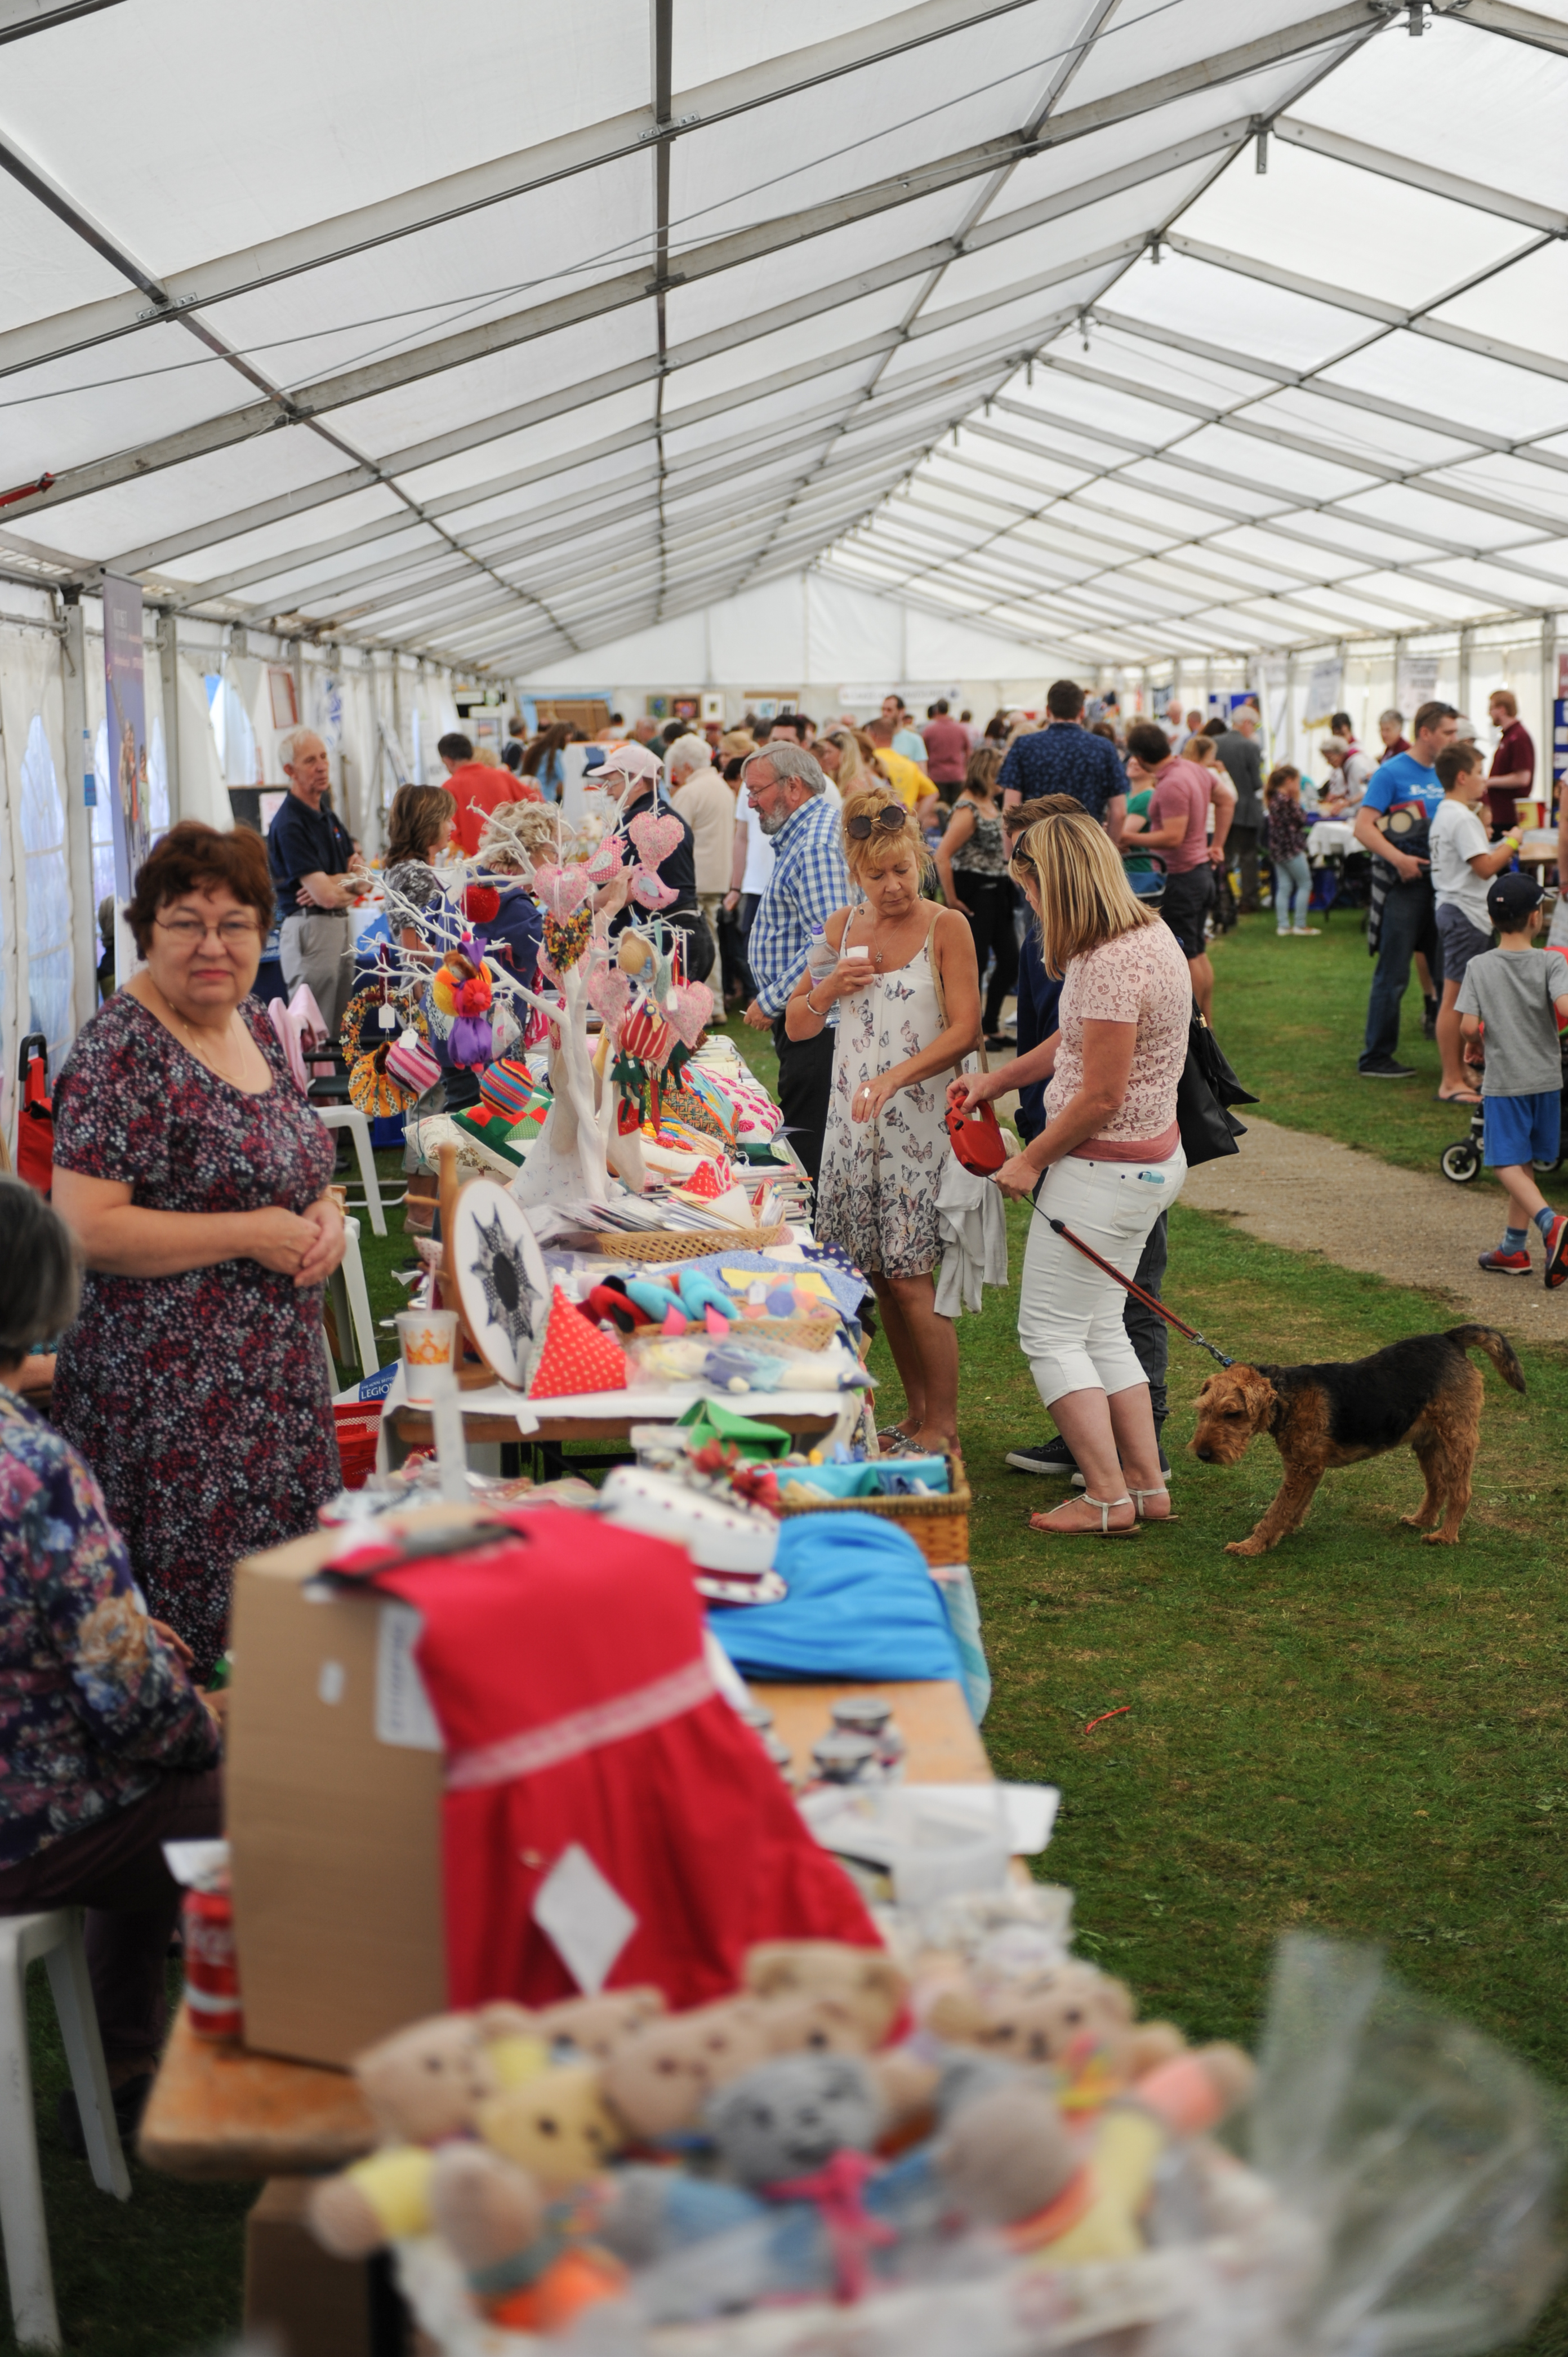 Fun And Easy Psychic Games: Town Show And Family Fun Day